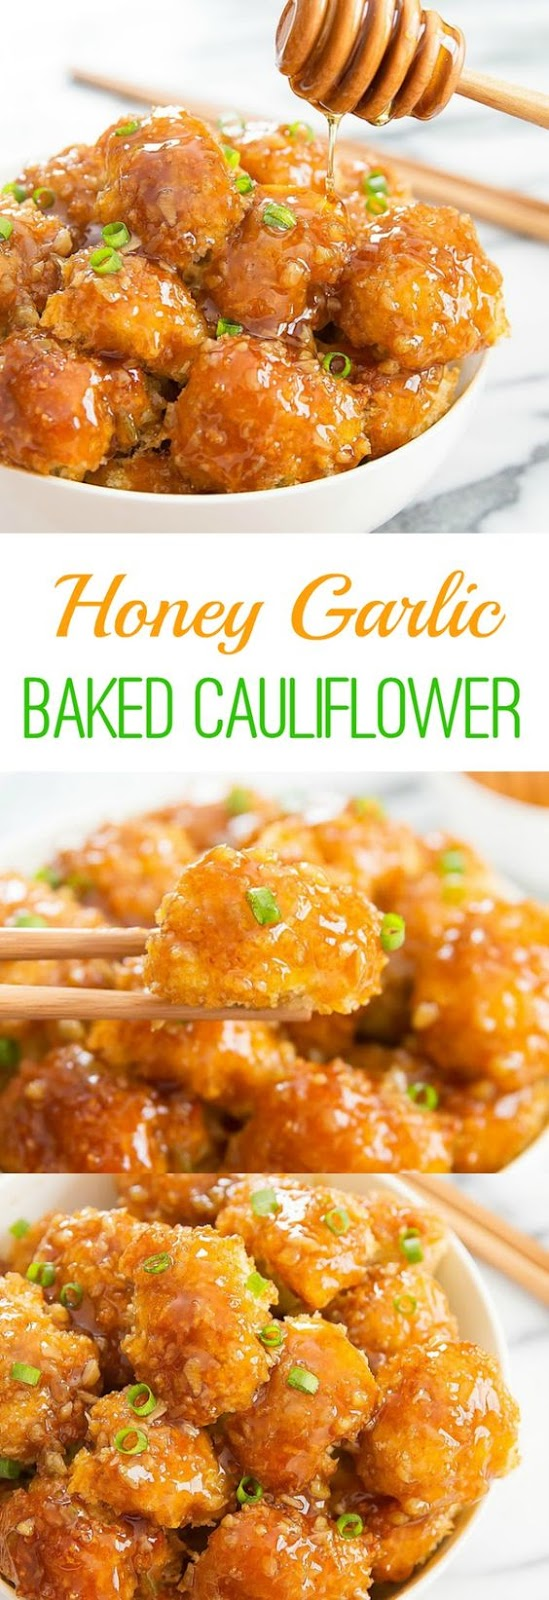 HONEY GARLIC BAKED CAULIFLOWER  #masonjar #healthy #recipes #greatist #vegetarian #breakfast #brunch  #legumes #chicken #casseroles #tortilla #homemade #popularrcipes #poultry #delicious #pastafoodrecipes  #Easy #Spices #ChopSuey #Soup #Classic #gingerbread #ginger #cake #classic #baking #dessert #recipes #christmas #dessertrecipes #Vegetarian #Food #Fish #Dessert #Lunch #Dinner #SnackRecipes #BeefRecipes #DrinkRecipes #CookbookRecipesEasy #HealthyRecipes #AllRecipes #ChickenRecipes #CookiesRecipes #ріzzа #pizzarecipe #vеgеtаrіаn #vegetarianrecipes #vеggіеѕ #vеgеtаblеѕ #grееnріzzа #vеggіеріzzа #feta #pesto #artichokes #brоссоlіSаvе   #recipesfordinner #recipesfordinnereasy #recipeswithgroundbeef  #recipeseasy #recipesfordinnerhealth #AngeliqueRecipes #RecipeLion #Recipe  #RecipesFromTheBlog #RecipesyouMUST #RecipesfromourFavoriteBloggers #BuzzFeed #Tasty #BuzzFeed #Tasty #rice #ricerecipes #chicken #dinner #dinnerrecipes #easydinner #friedrice #veggiespeas #broccoli #cauliflower #vegies,  #vegetables  #dinnerrecipes #dinnerideas #dinner #dinnerrecipeseasy #dinnerrecipesforfamily #TheDinnerMom #DinnerthenDessert #DinnerattheZoo #QuickandEasyRecipes #DinnerattheZooRecipes #DINNERRecipes #DinnerRecipesSimpleMeals